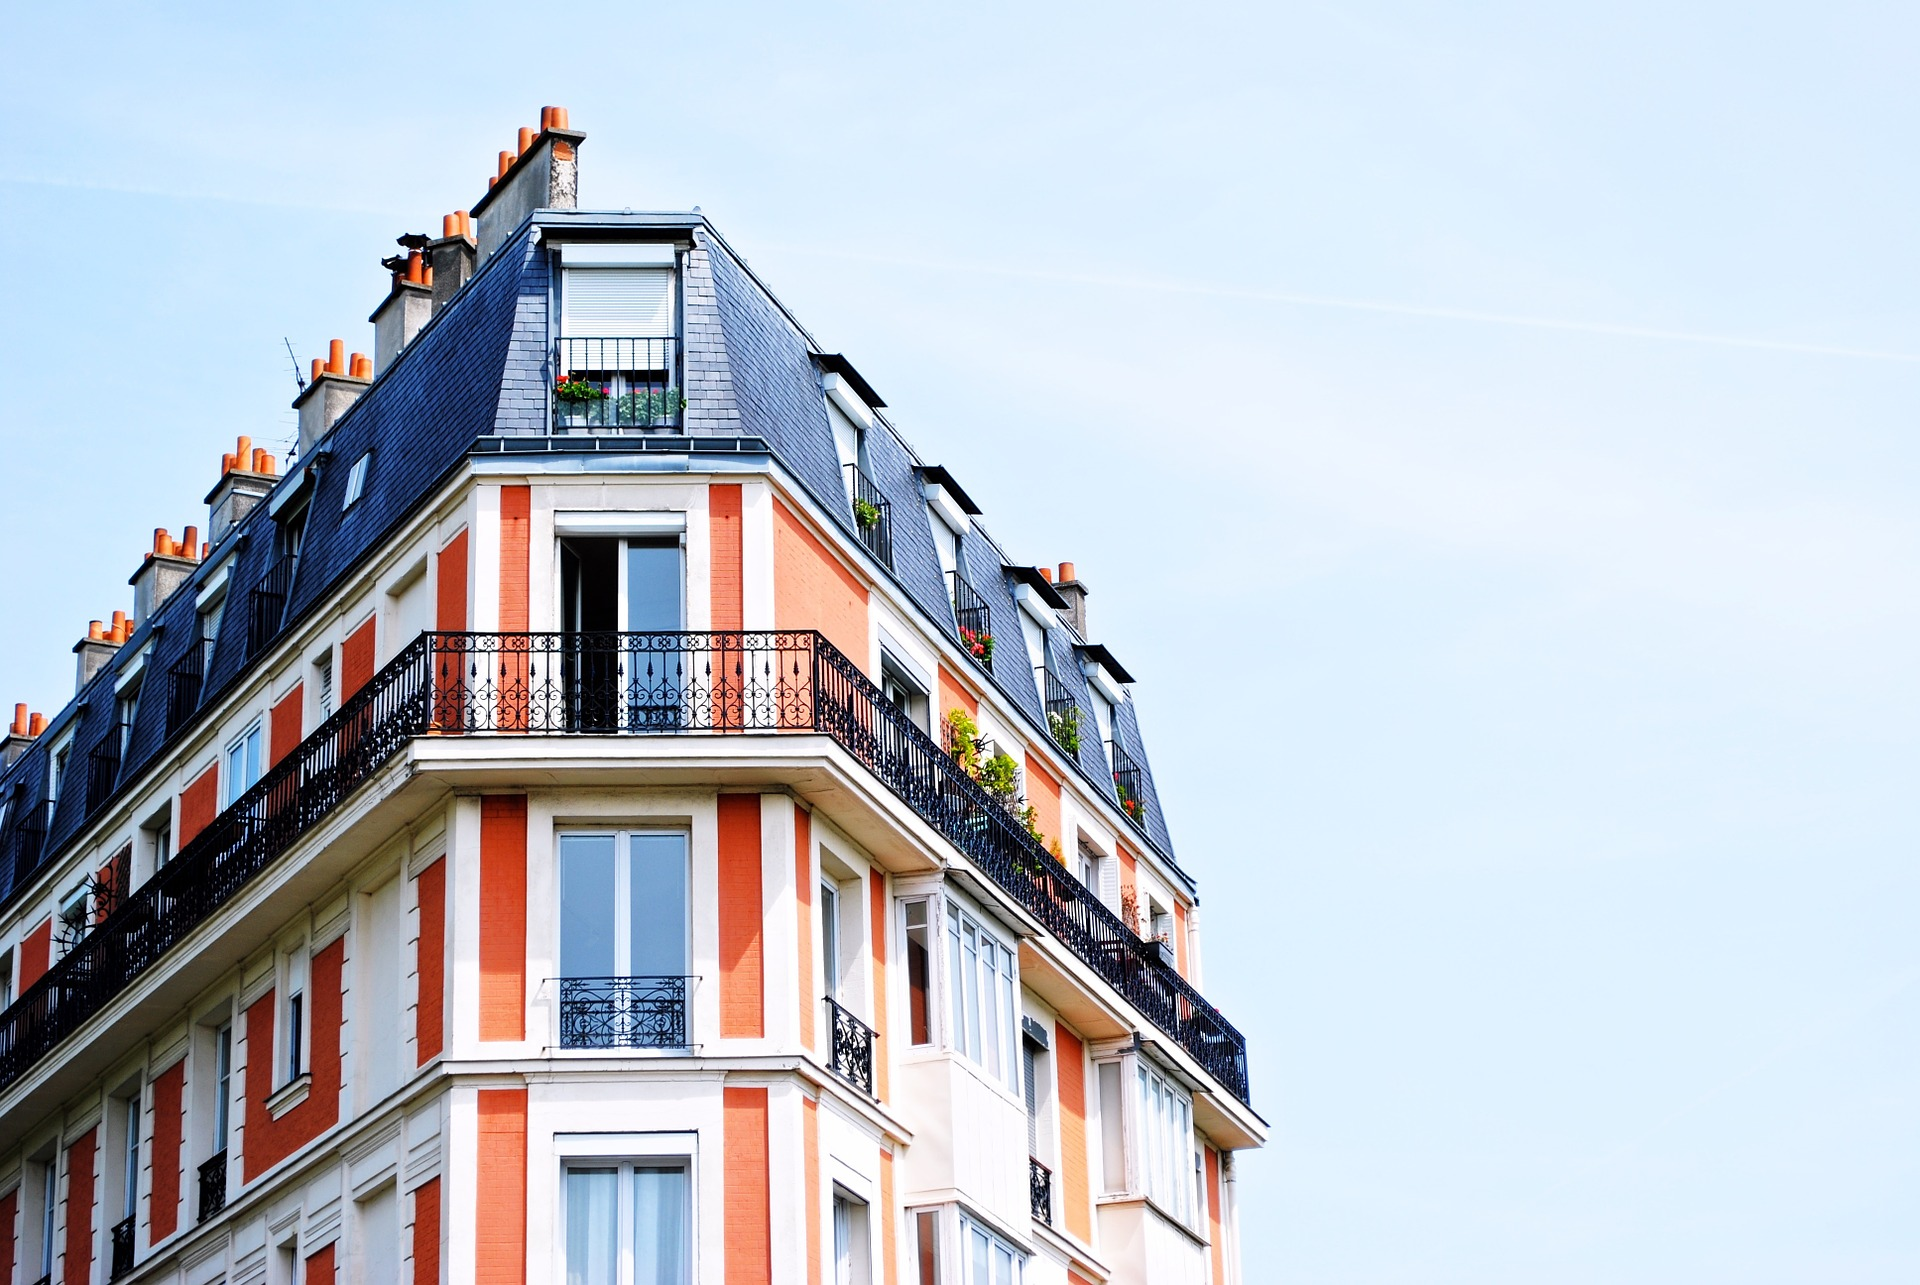 appartement infesté de cafards